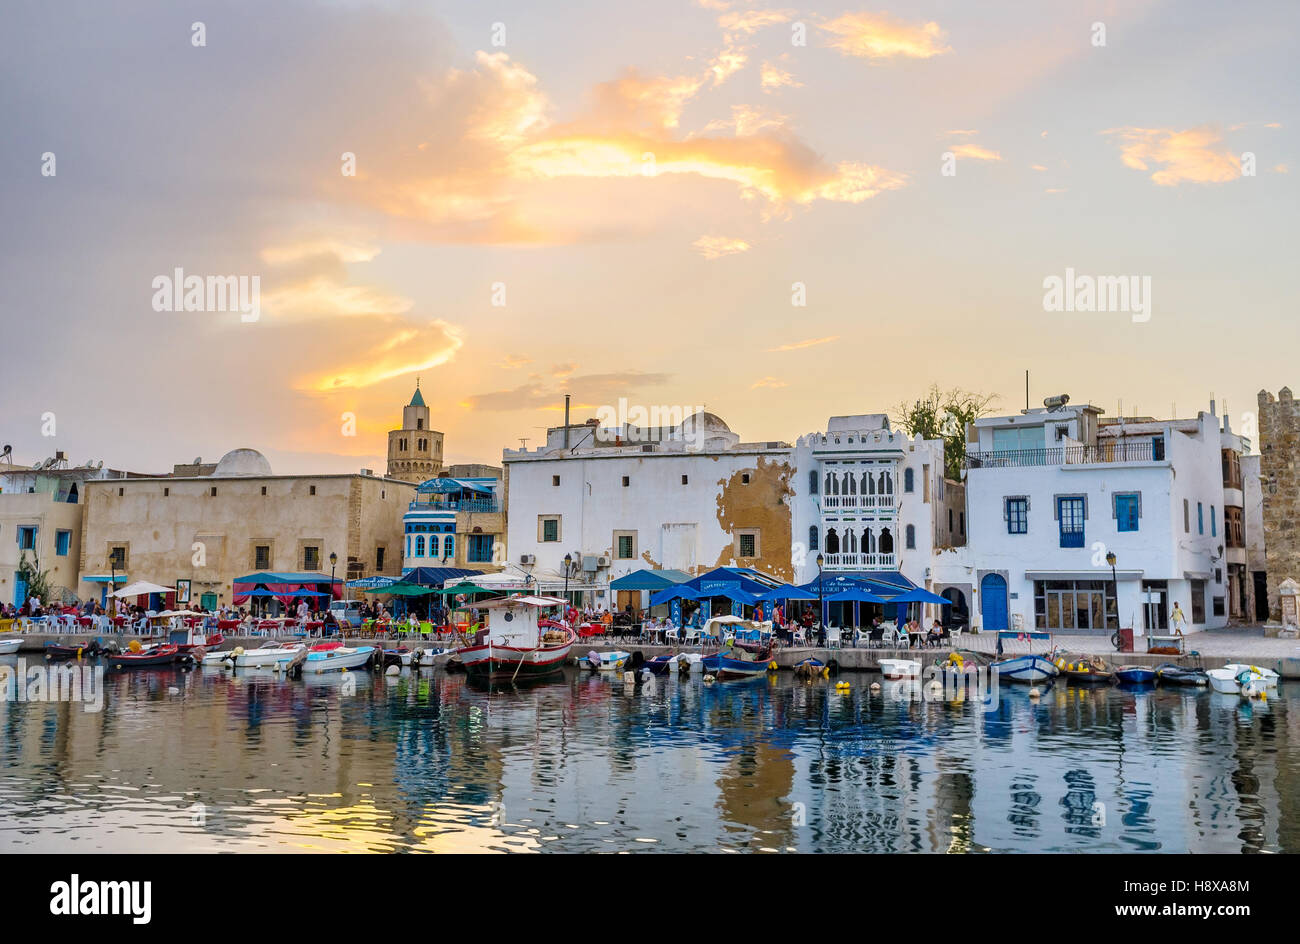 The sunset makes the town unusual and magic place - Stock Image